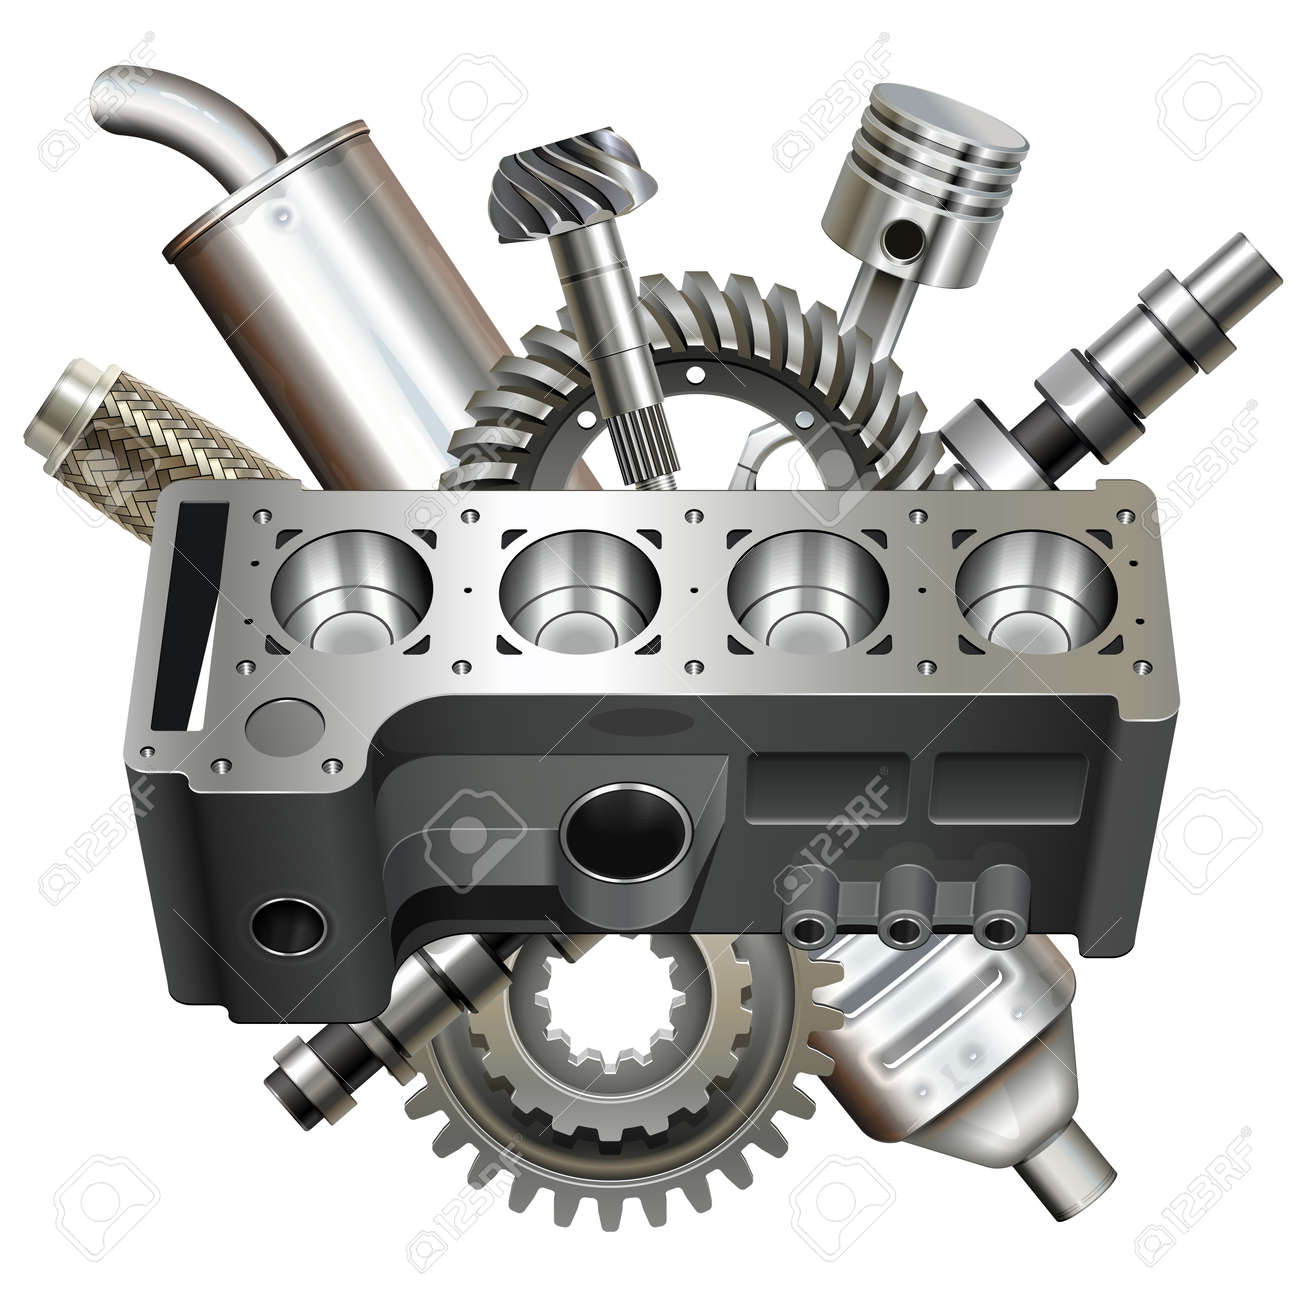 Vector Engine Block with Parts isolated on white background - 165558616